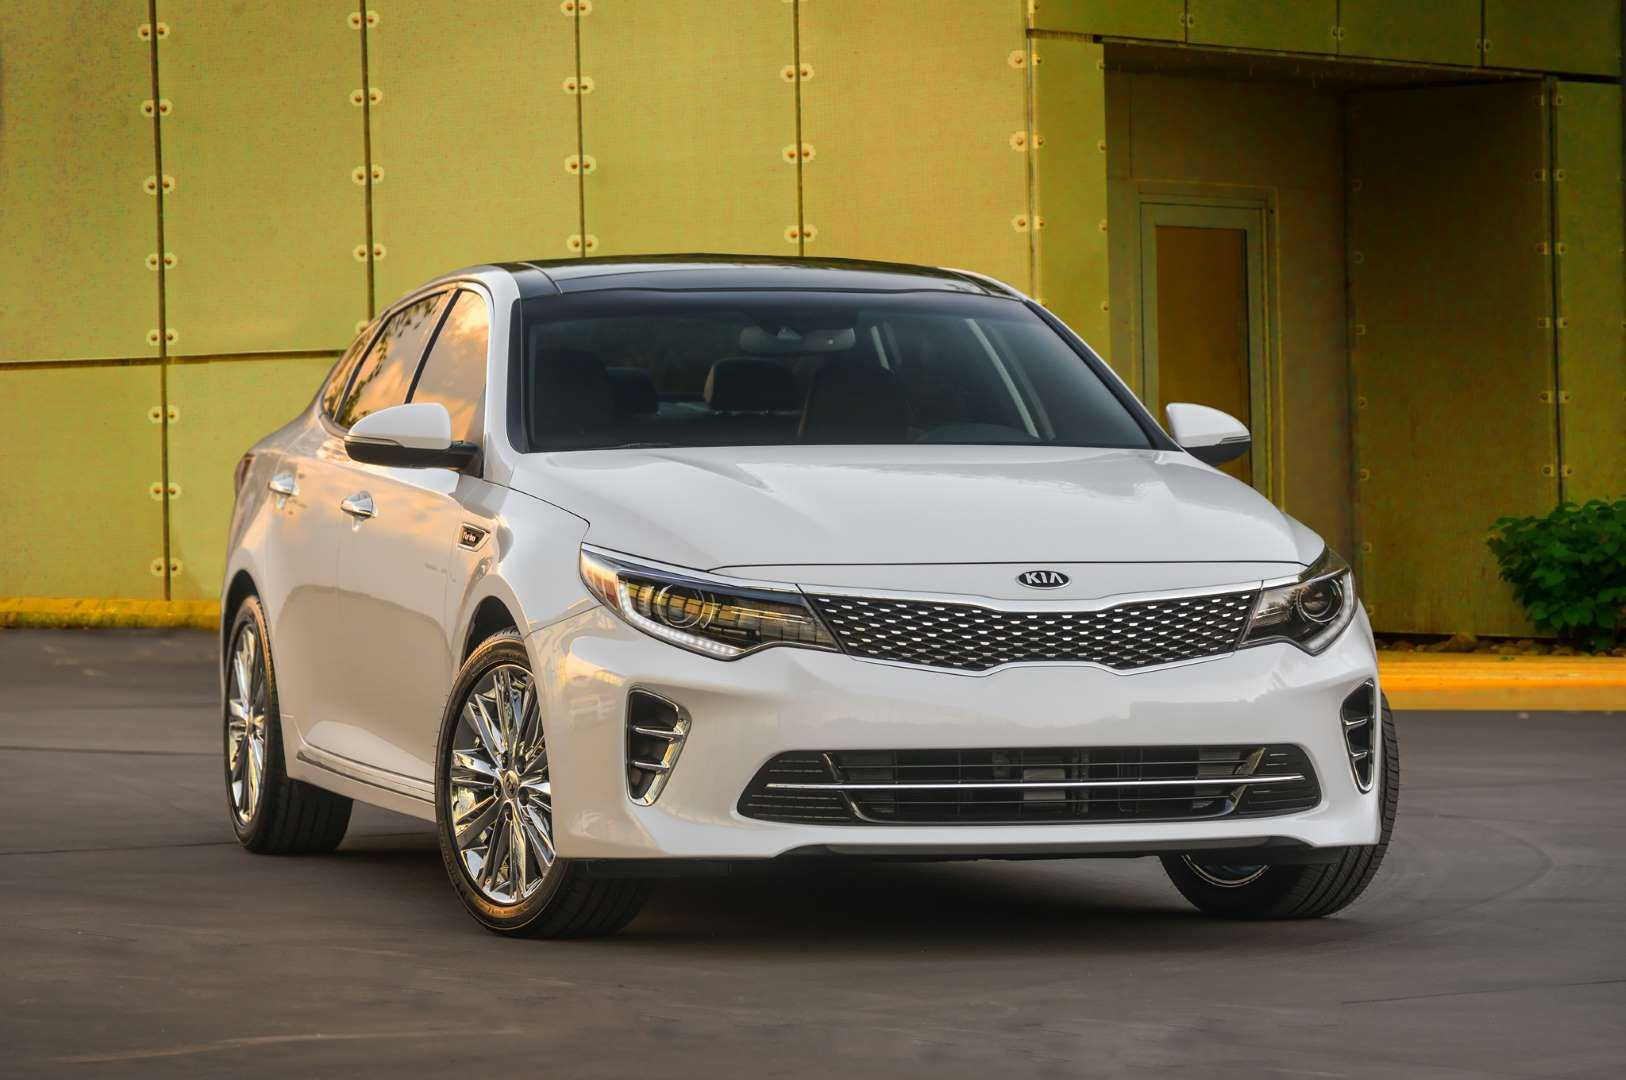 2016 Kia Optima SXL Provided by Automobile Kia motors, Kia